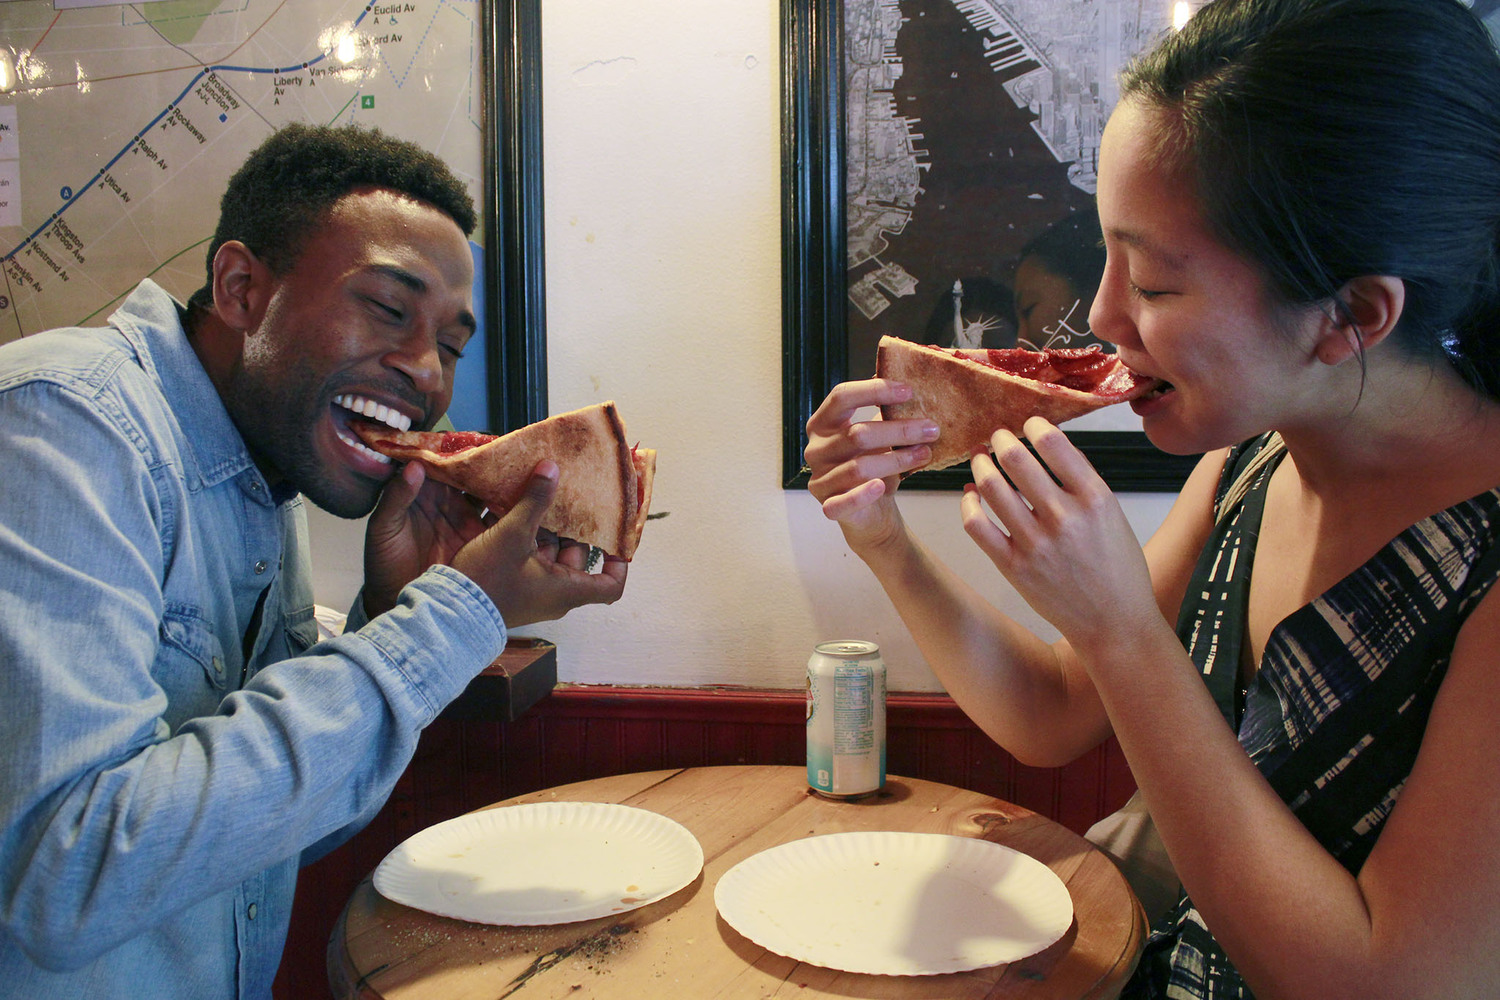 "Man and Woman Eating Folded Slices of Pizza and Smiling | You can use this photo for non-commercial purposes if you give credit, under this <a href=""https://creativecommons.org/licenses/by-nc/3.0/us/"" rel=""nofollow"">Creative Commons license</a>. For-profit media organizations also may use this, but as editorial content only (as illustrations for stories, for example, but not as advertising). Credit must read: Louise Ma / WNYC  We'd love to know if you're using this photo - send us an email (jkeefe@wnyc.org)!"